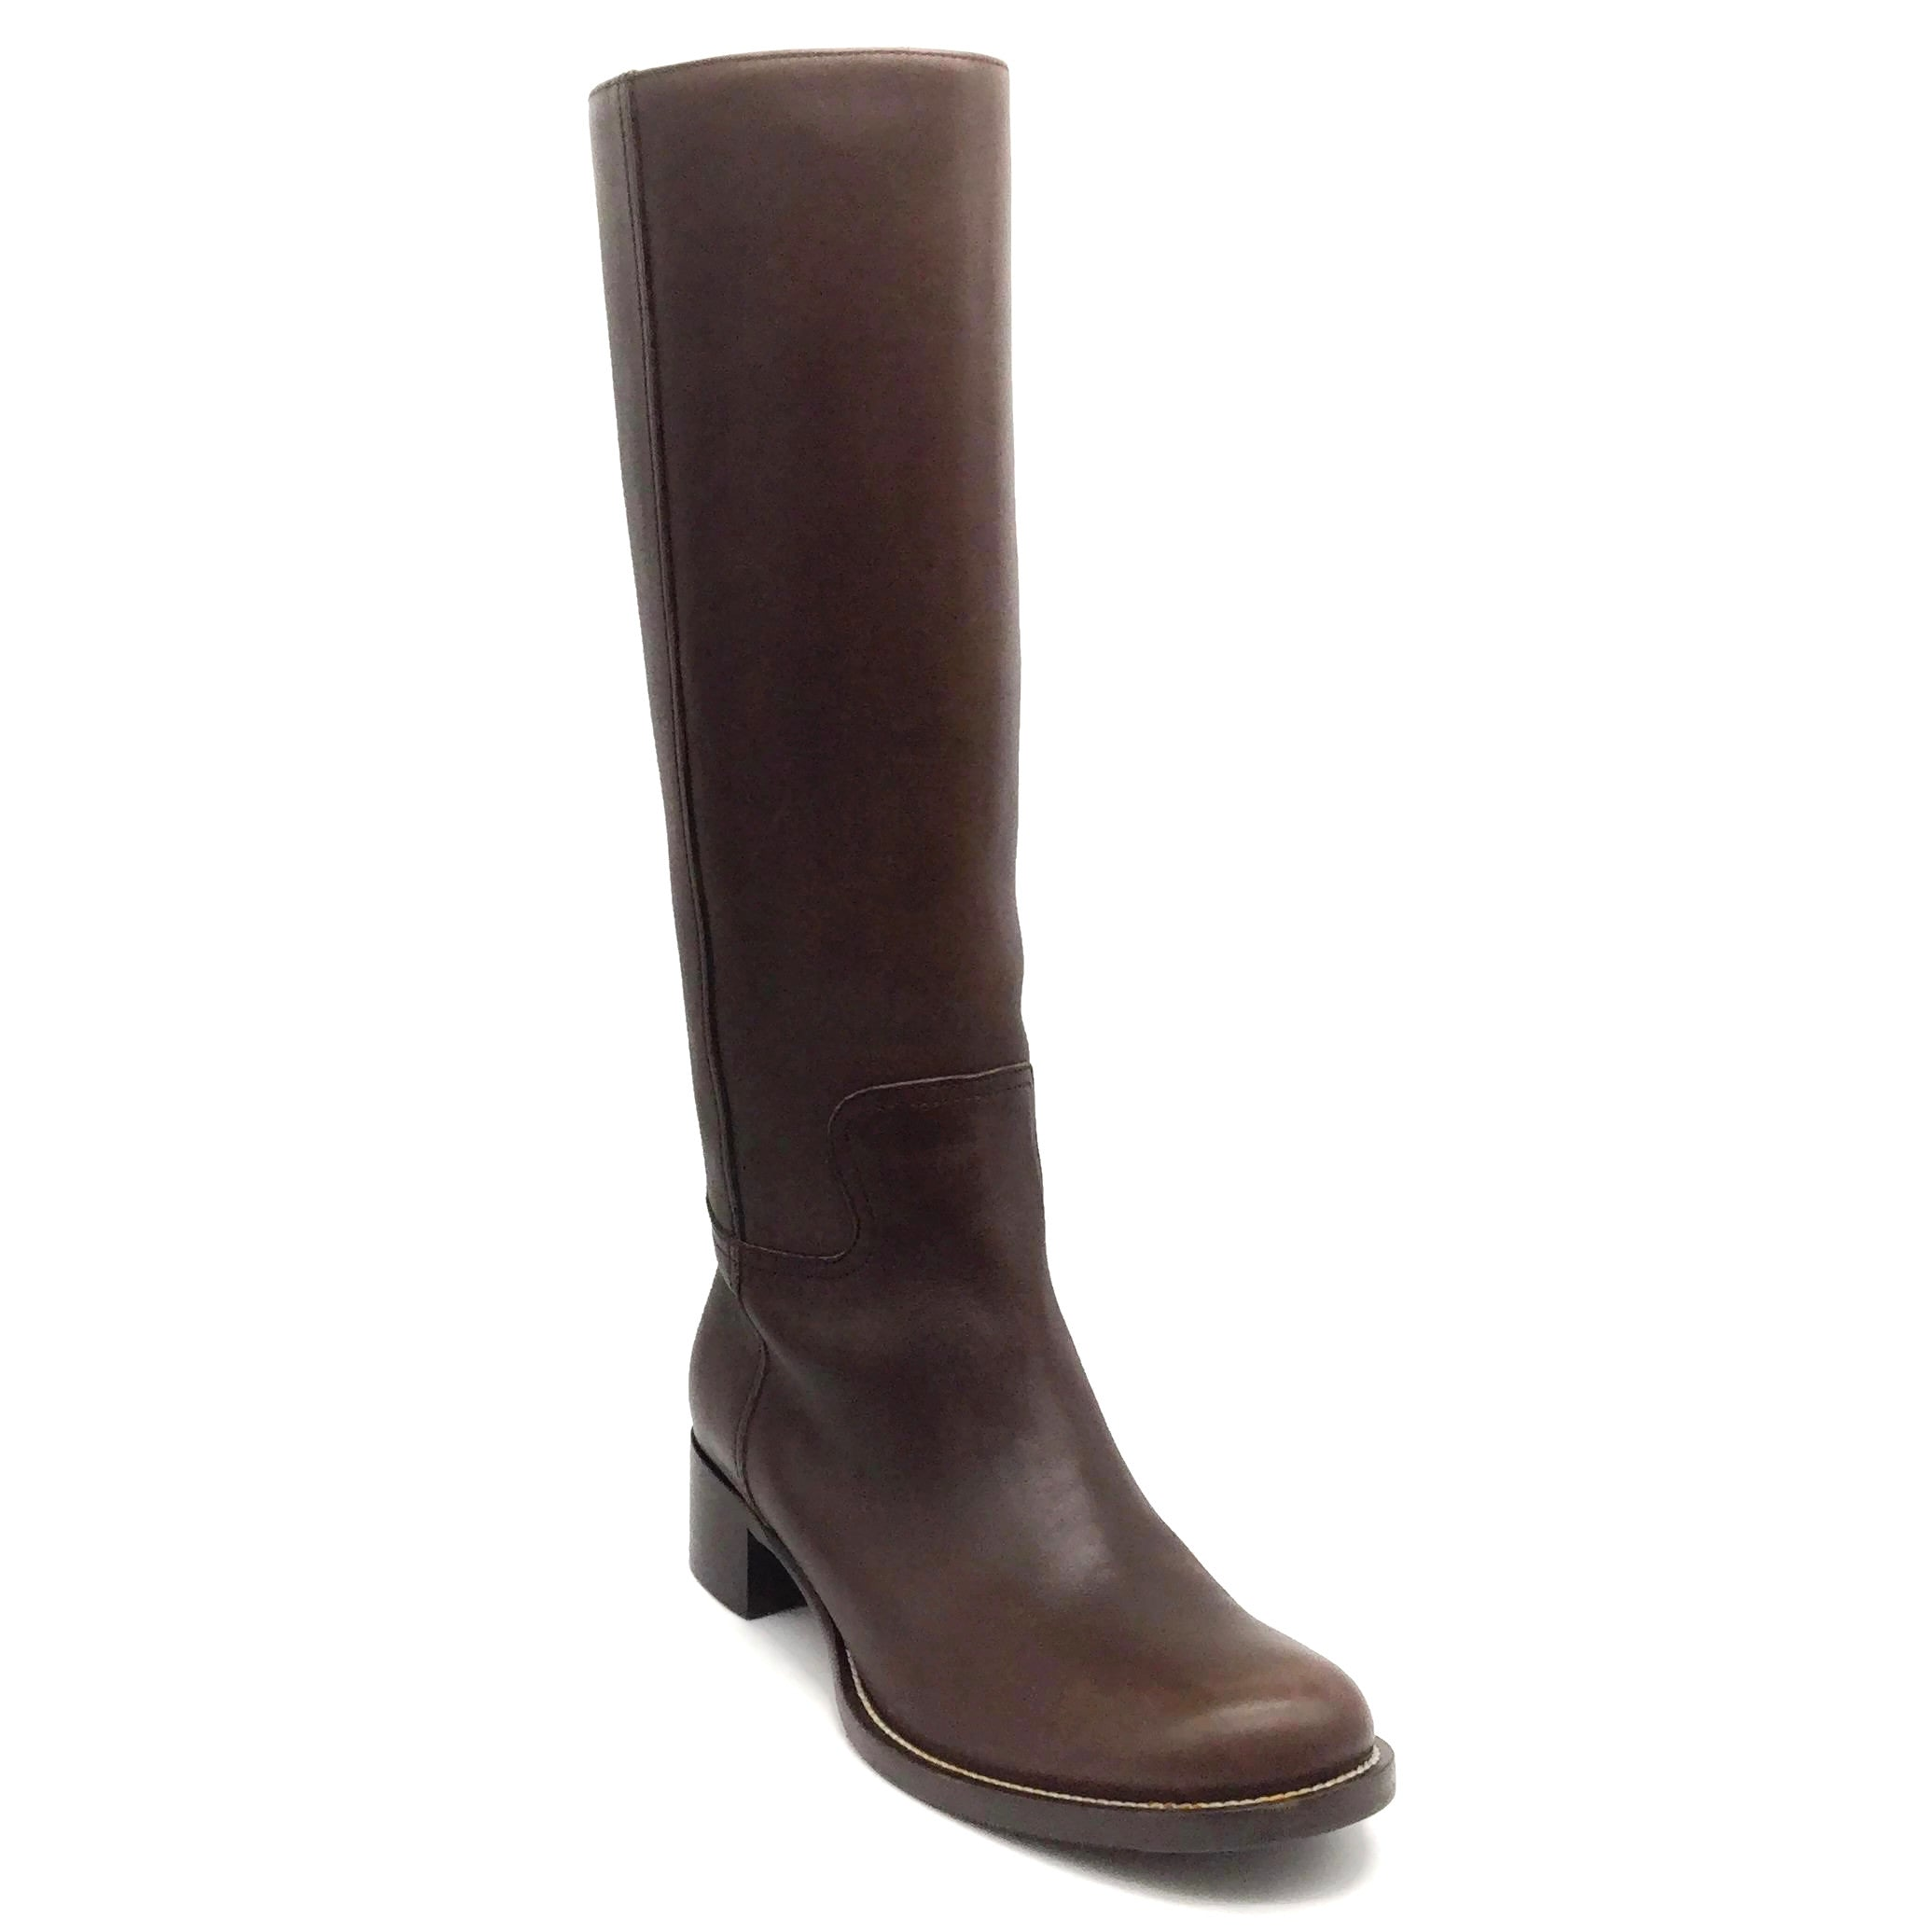 Miu Miu Brown Tall Riding Boots